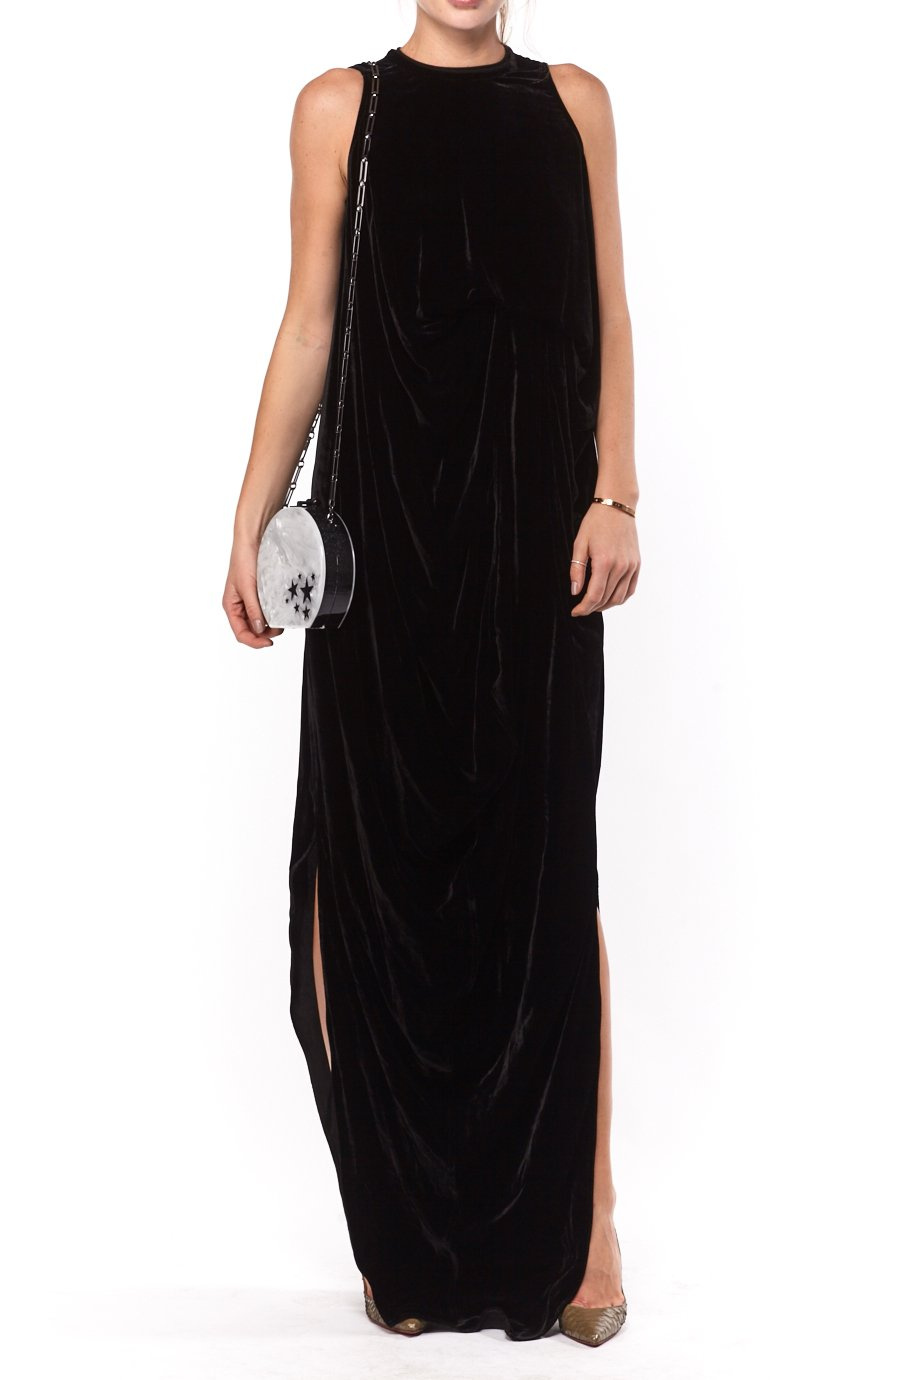 Rick Owens Black Double Slit Velvet Gown